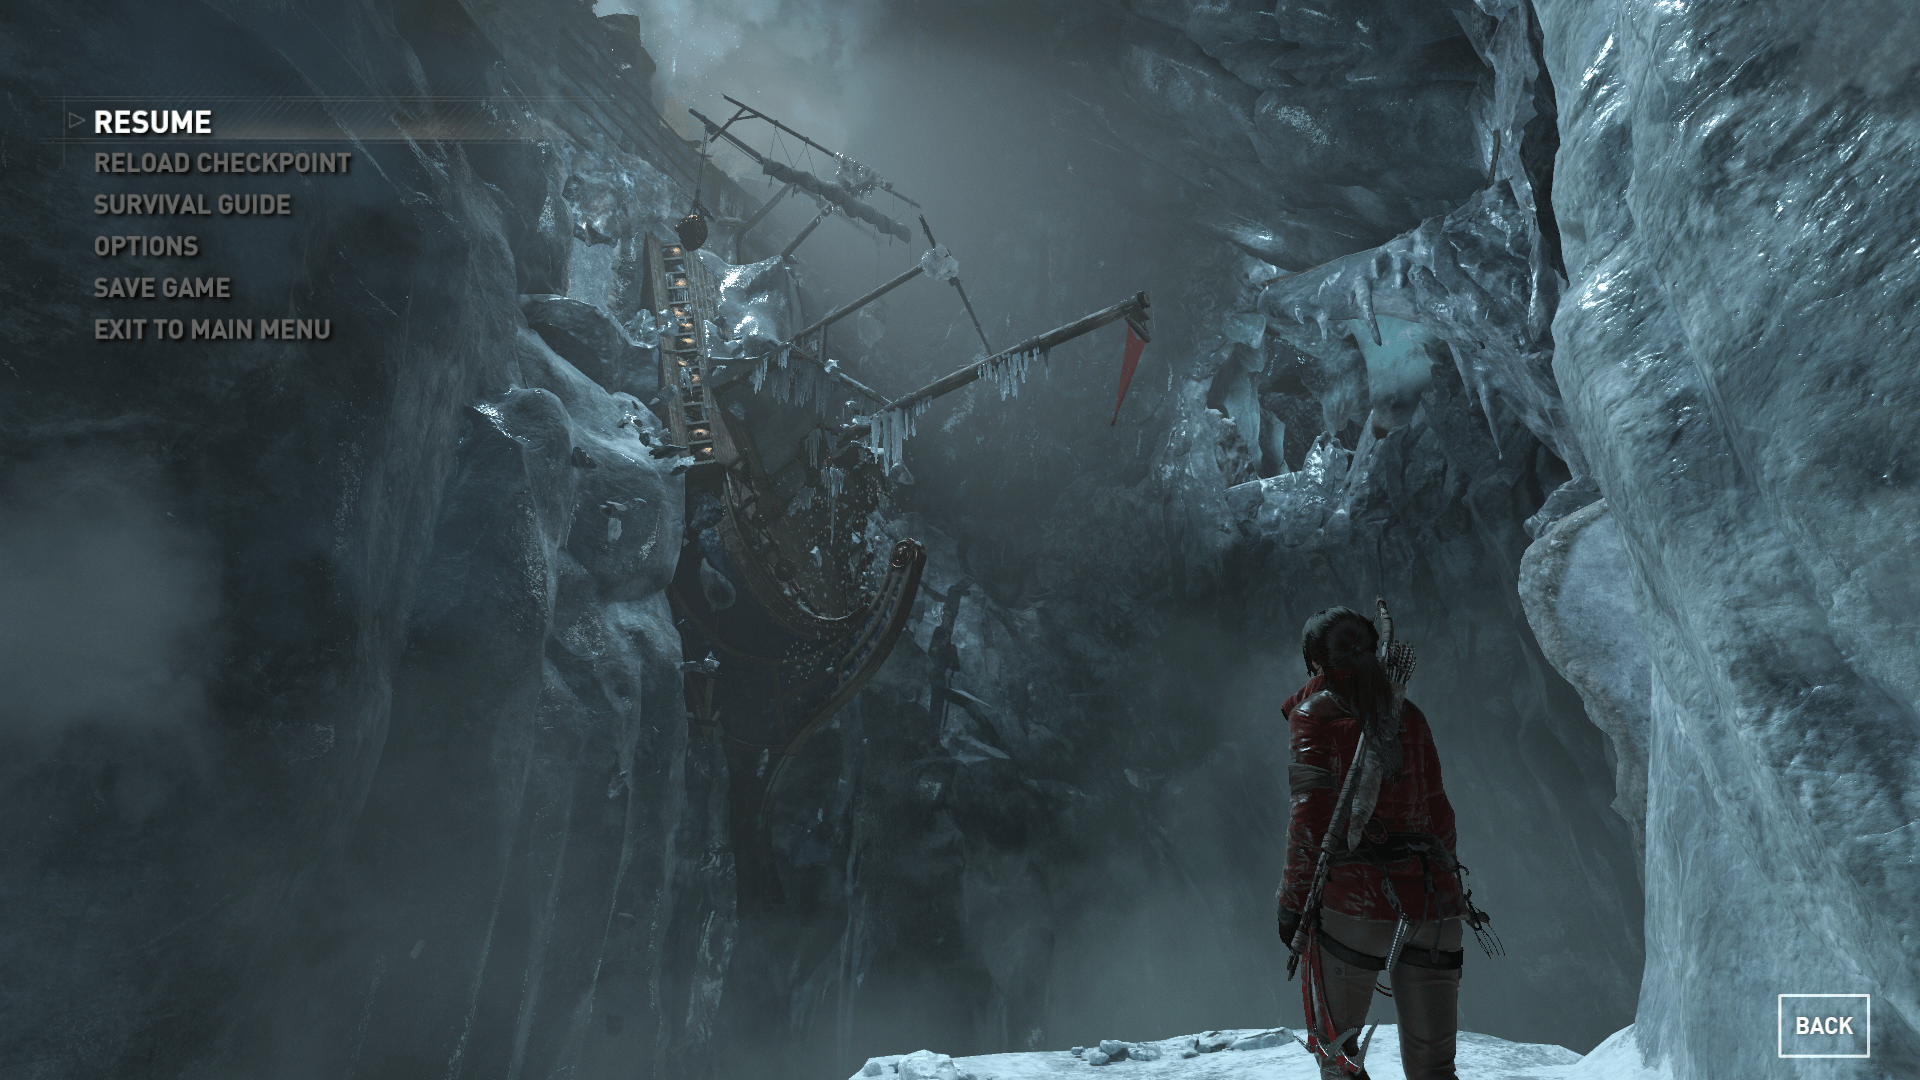 Tomb Raider 2013 Wallpaper Hd Rise Of The Tomb Raider Graphics Amp Performance Guide Geforce